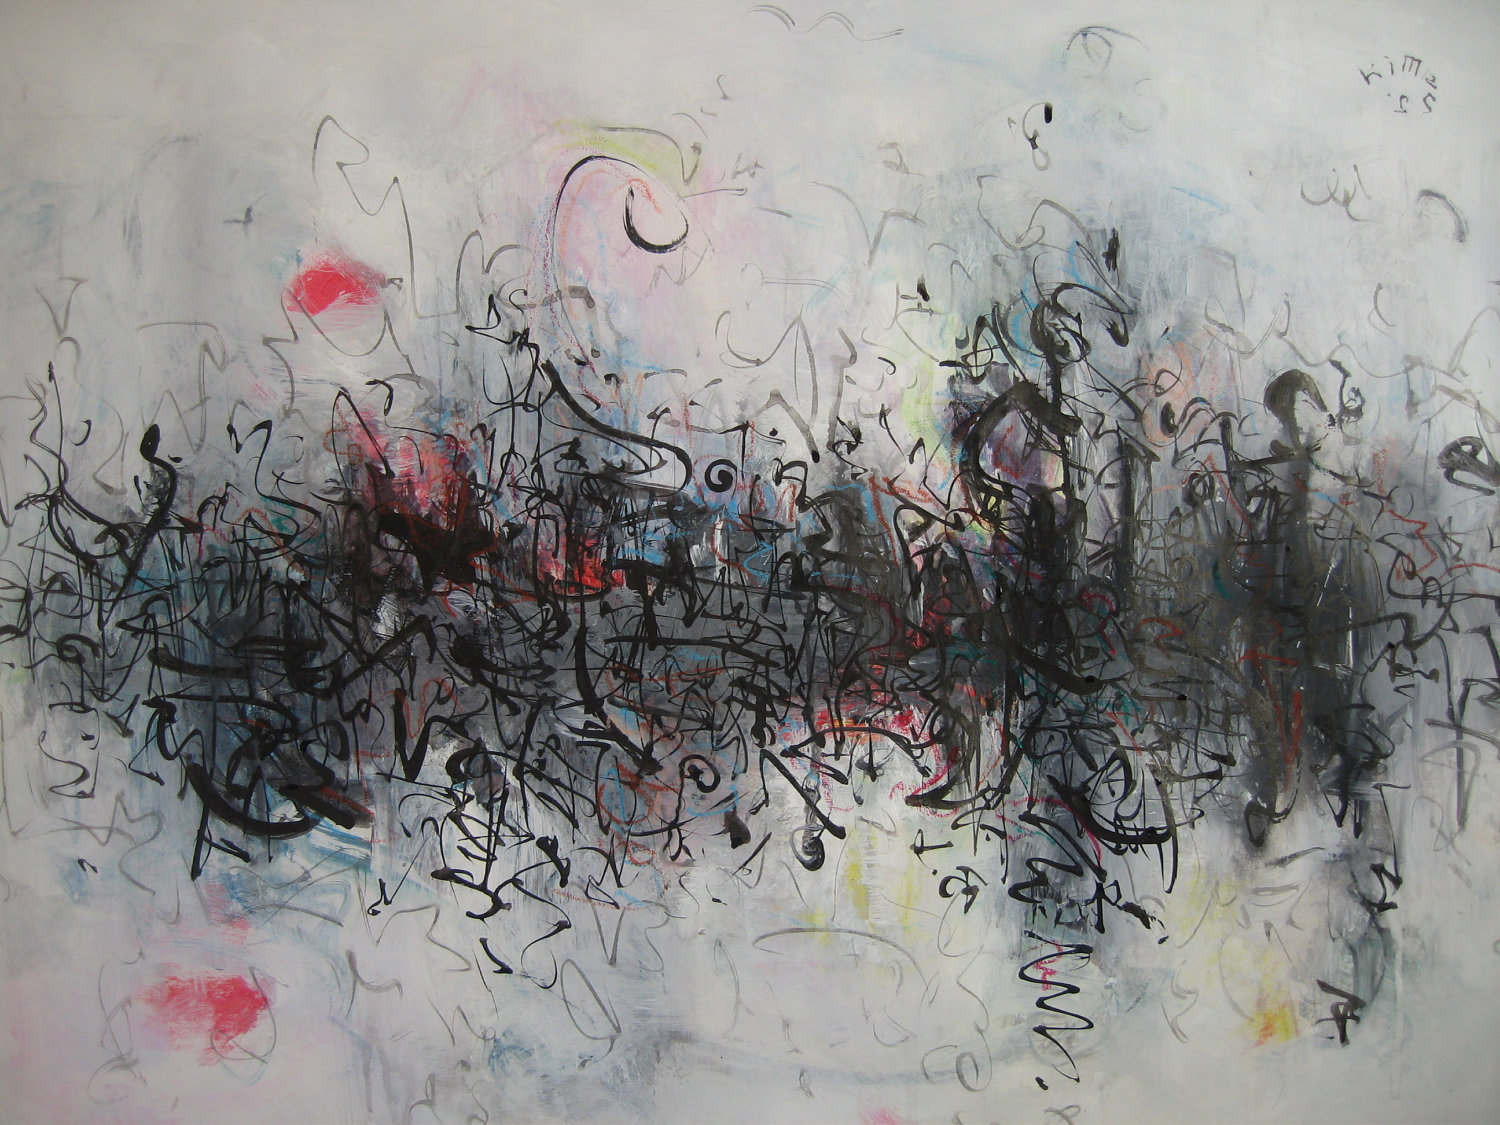 Modern Art 2011: February 2011 |Famous Contemporary Painting